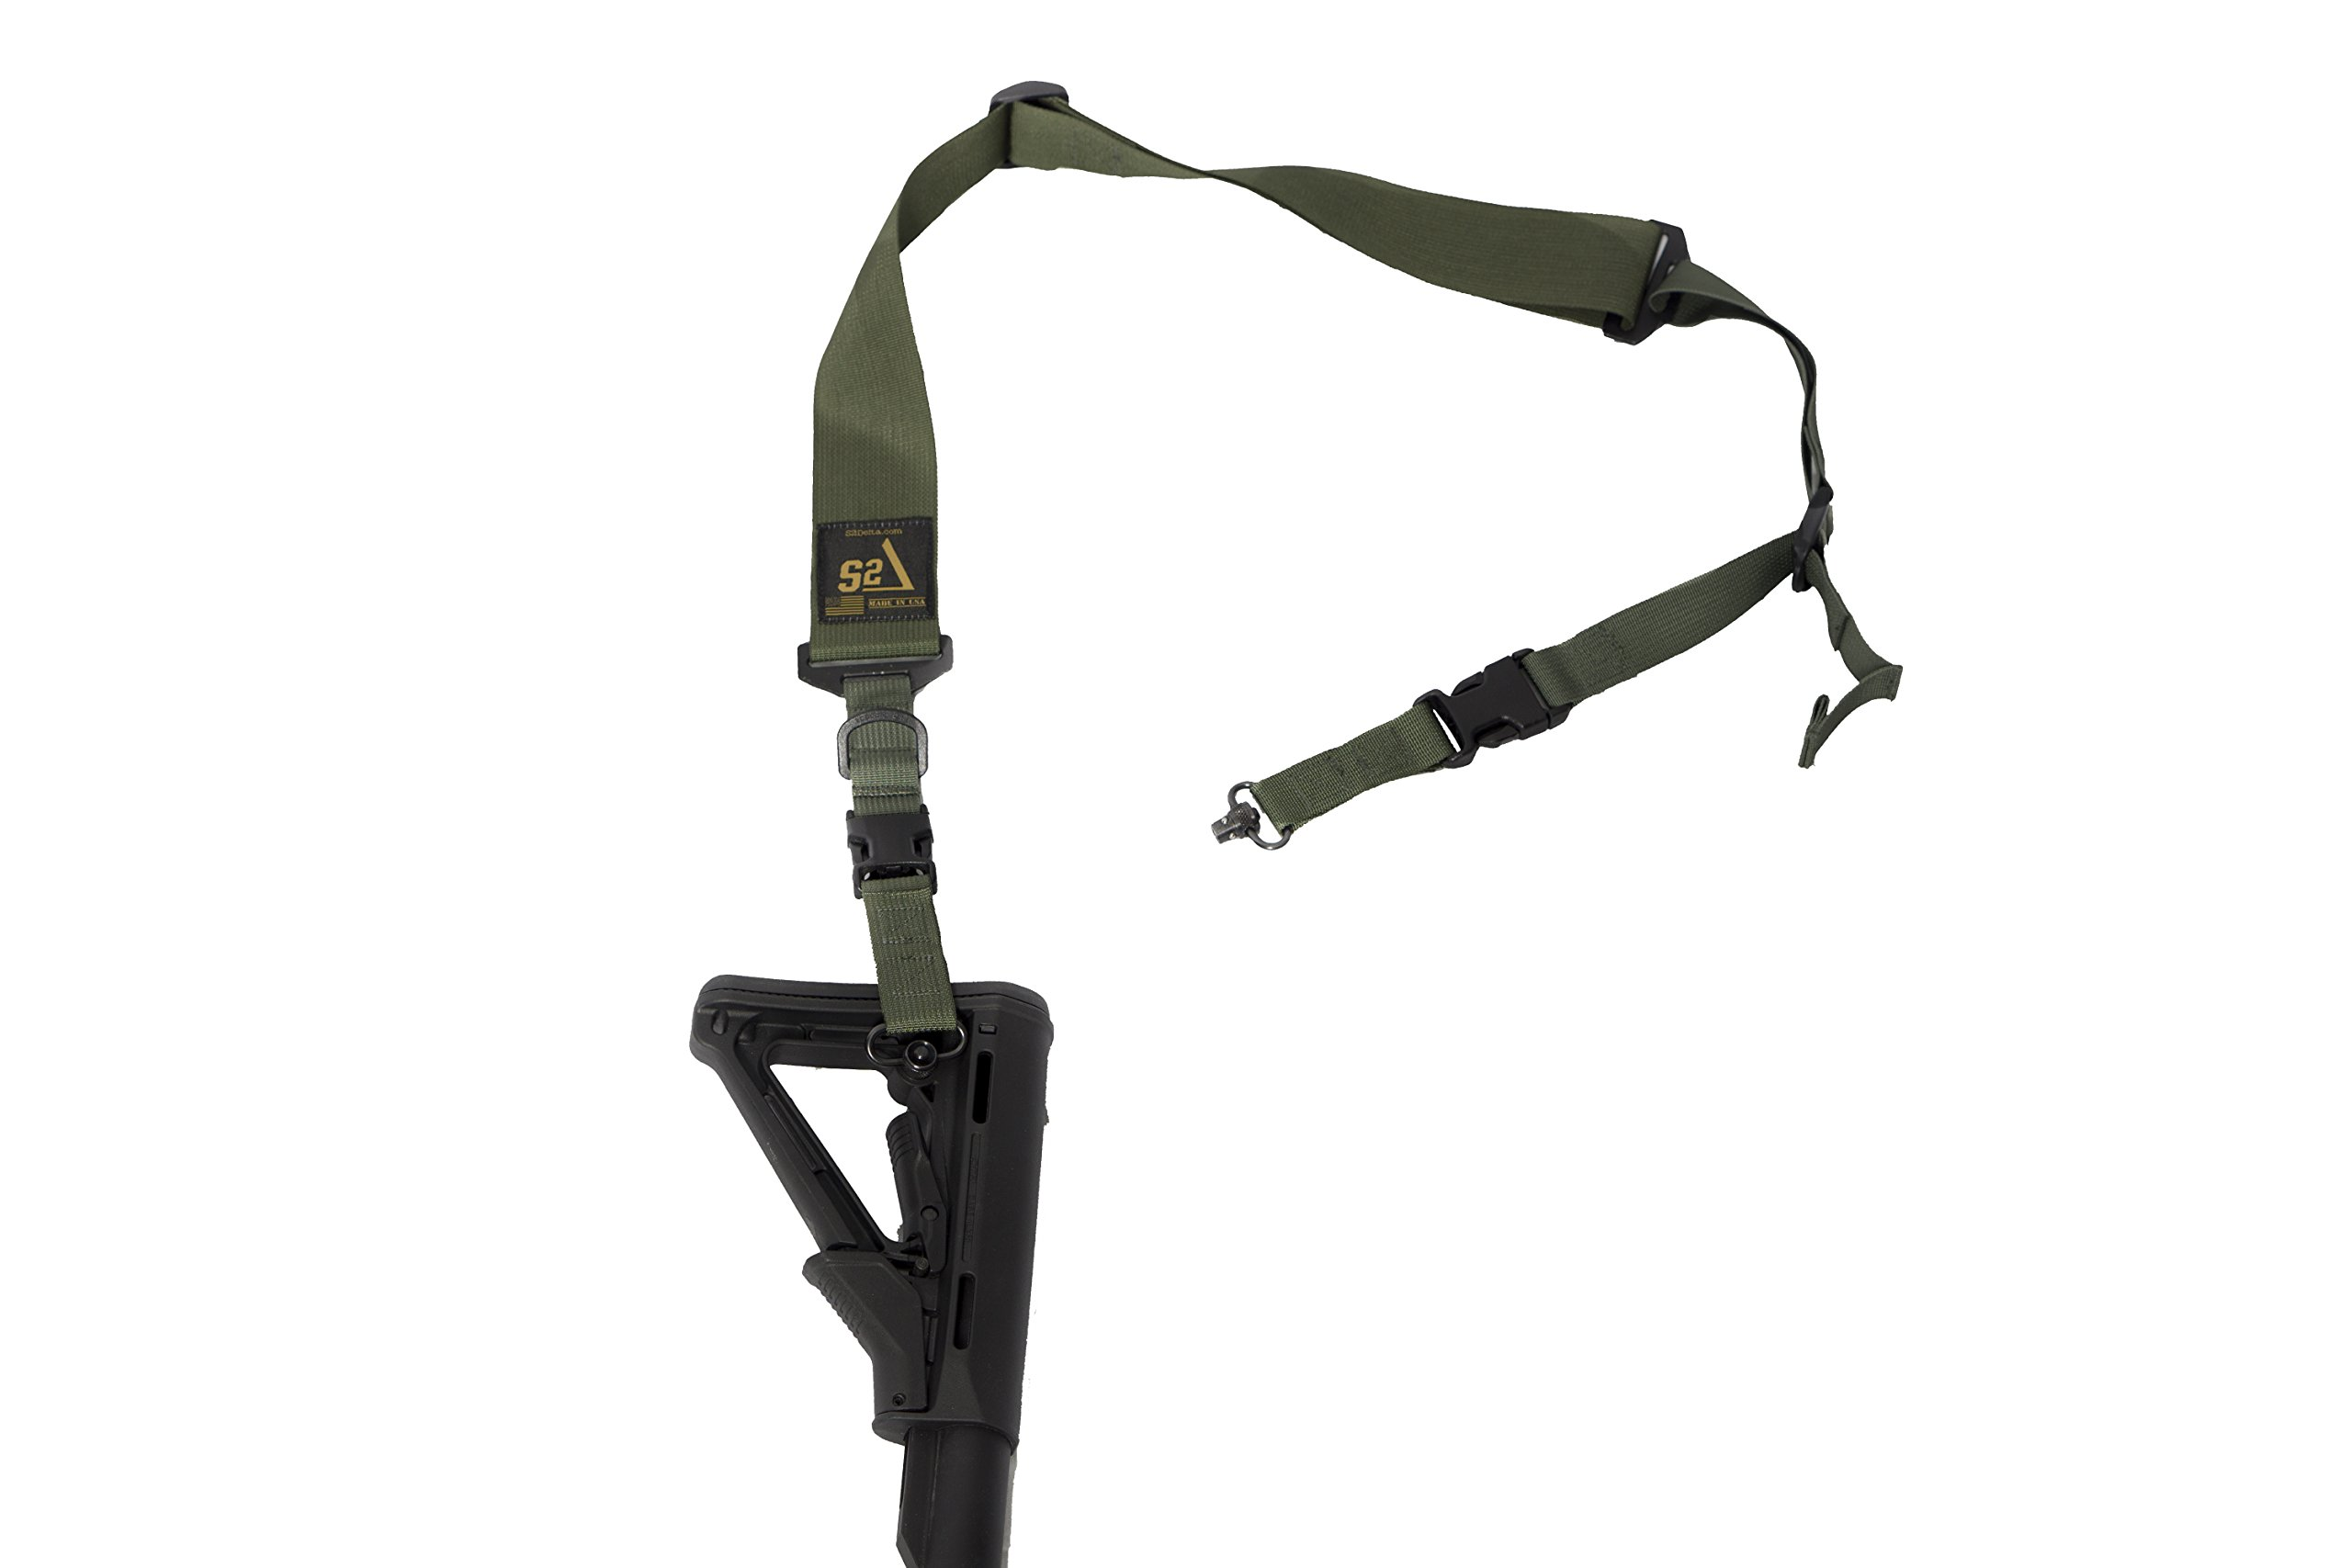 S2Delta - USA Made 2 Point Rifle Sling, Quick Adjustment, Modular Attachment Connections, Comfortable 2'' Wide Shoulder Strap to 1'' Attachment Ends (Green with Push Button Swivels) (MRS2P-USA-GPB) by S2Delta